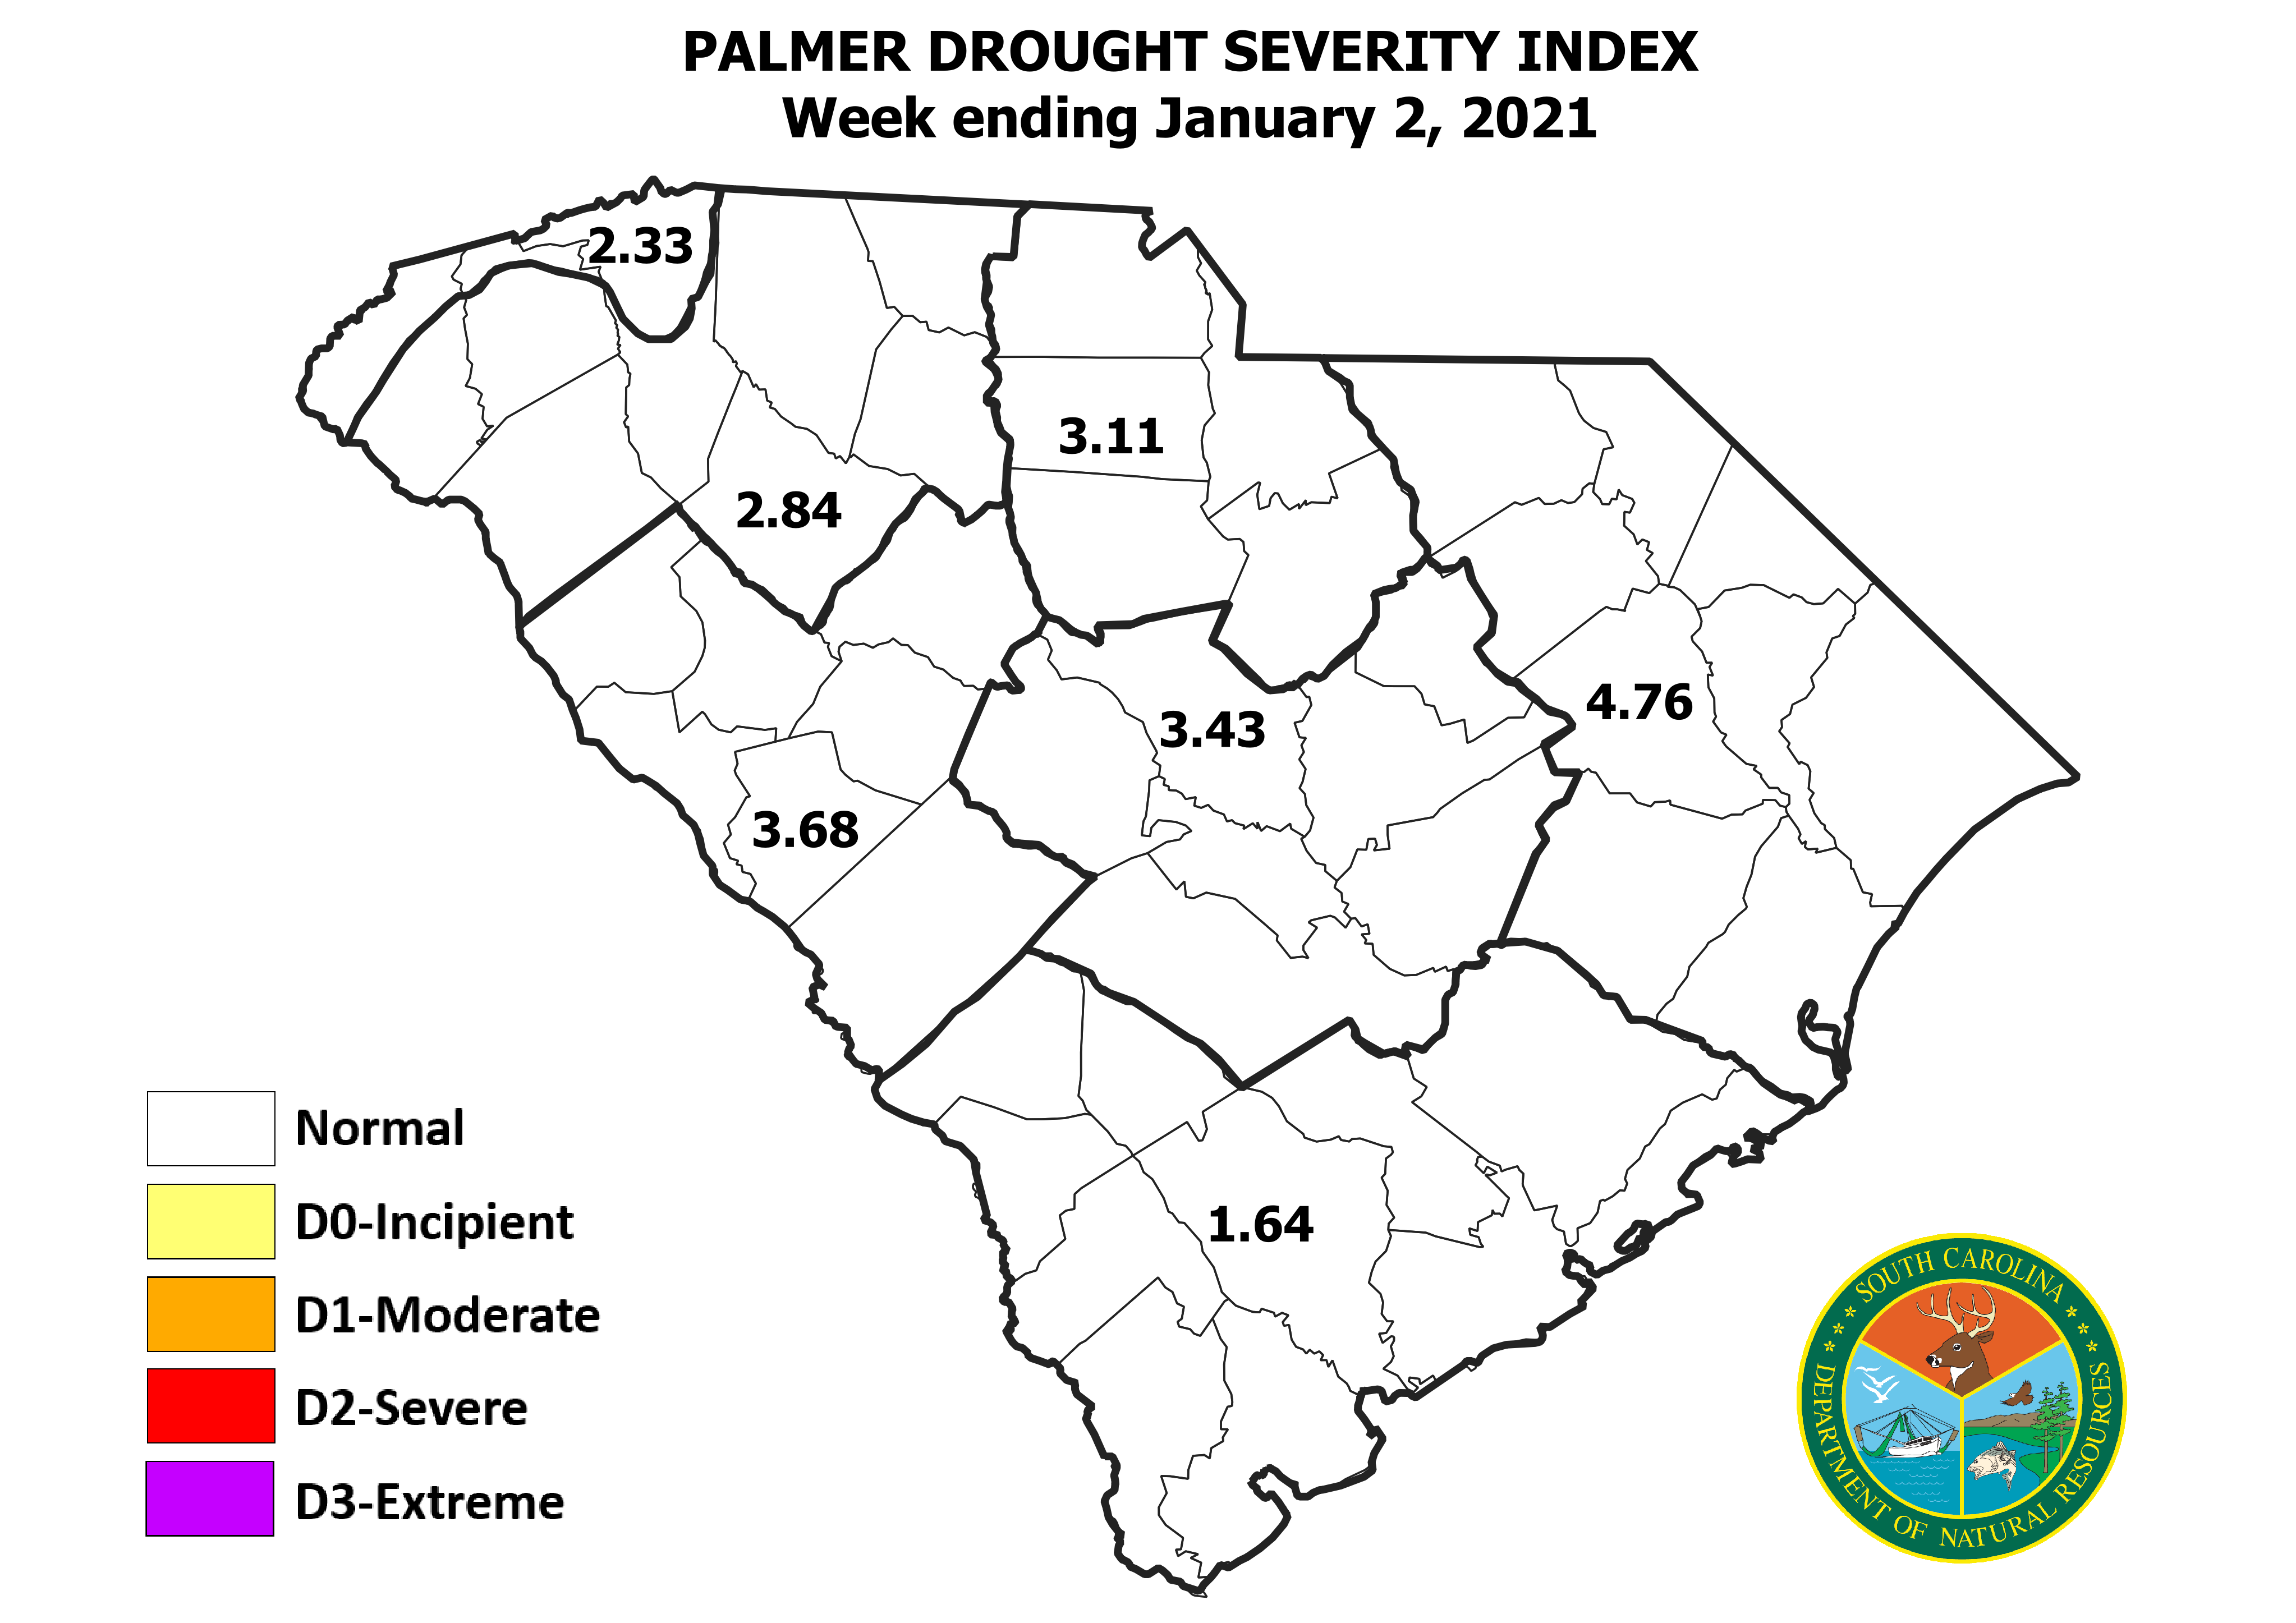 Thumbnail of Palmer Drought Severity Index map.